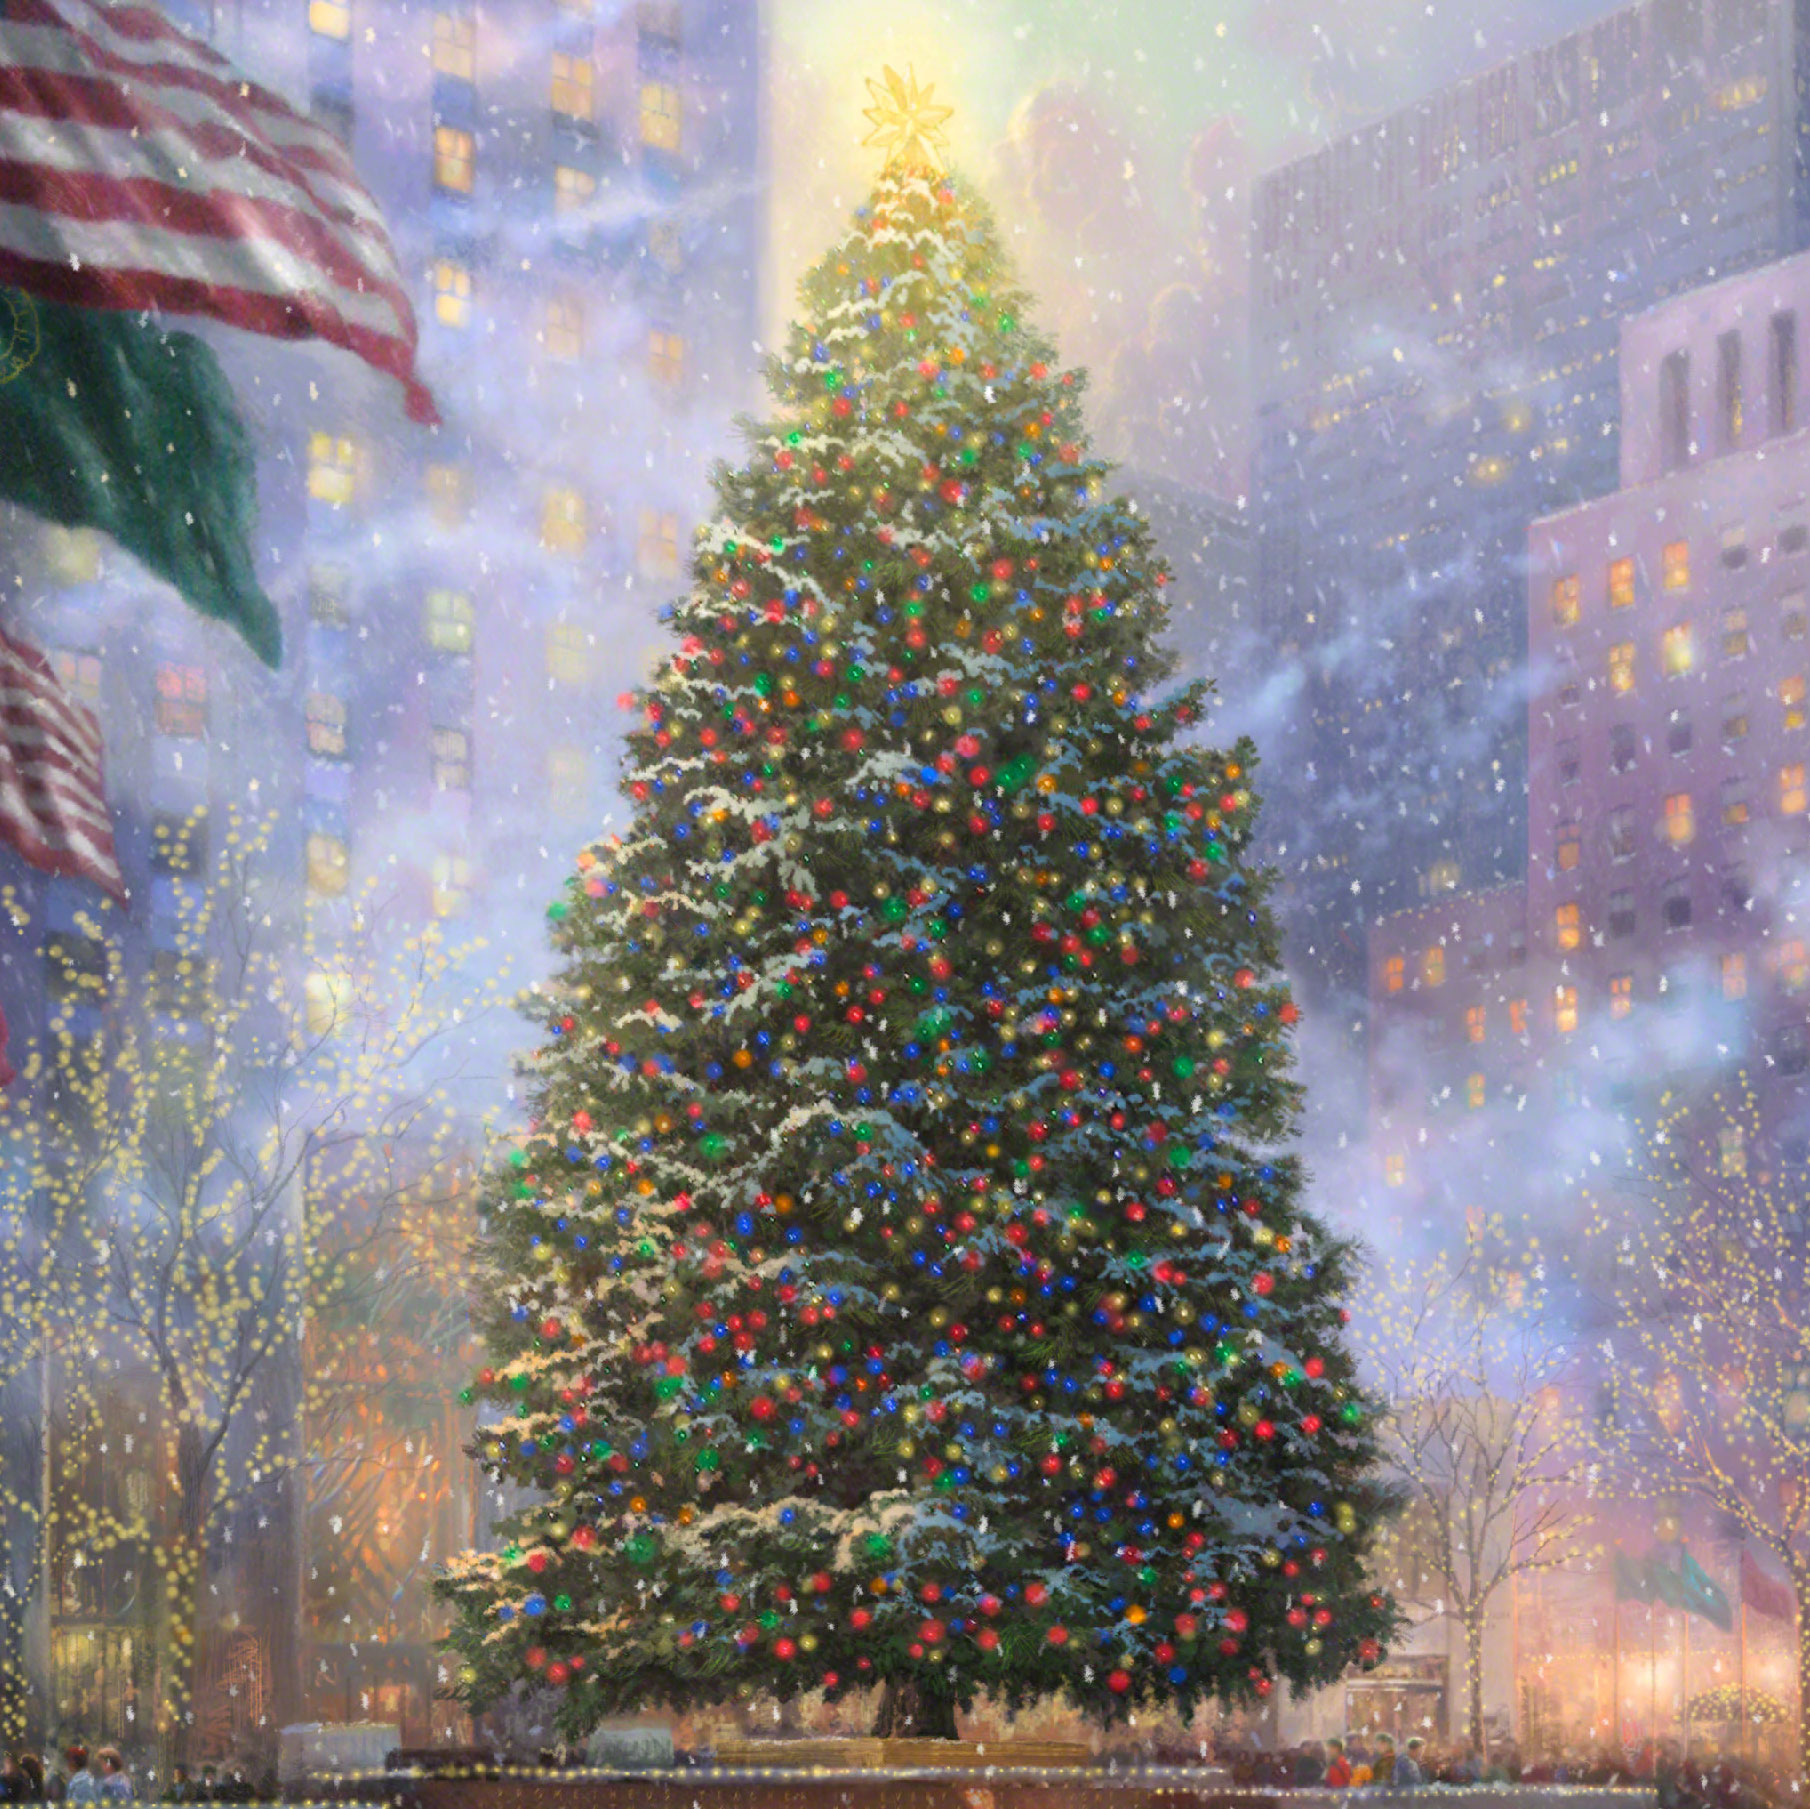 Christmas in New York – Limited Edition Art | The Thomas Kinkade Company